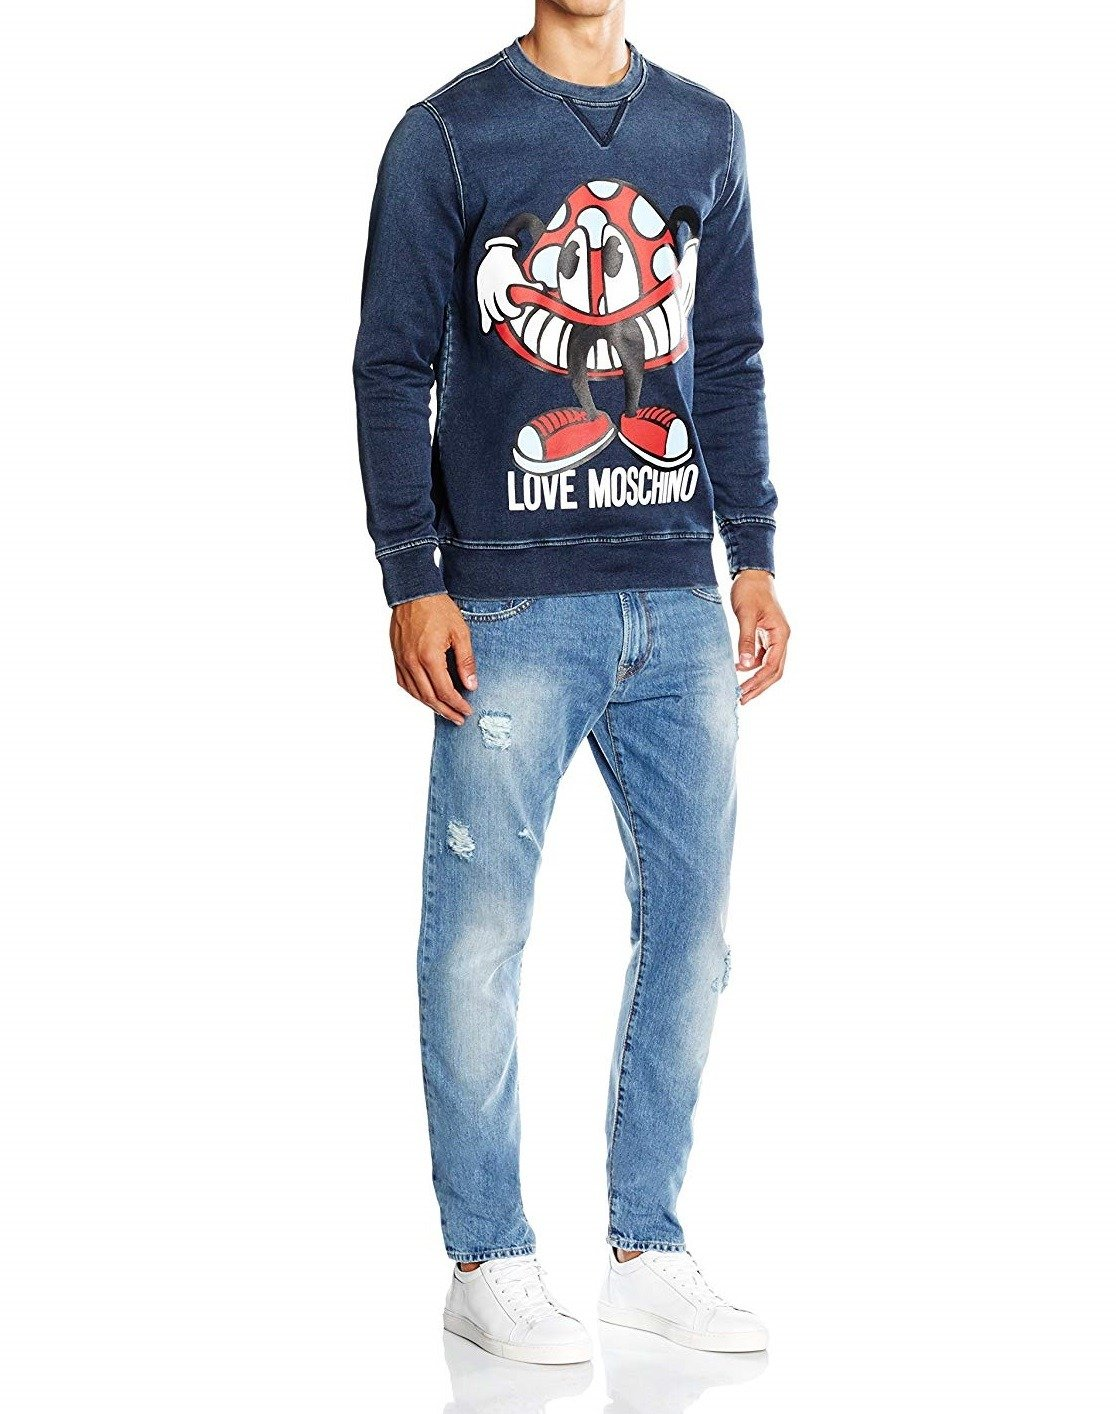 LOVE MOSCHINO Herren Men Pullover Sweatshirt Made in Italy